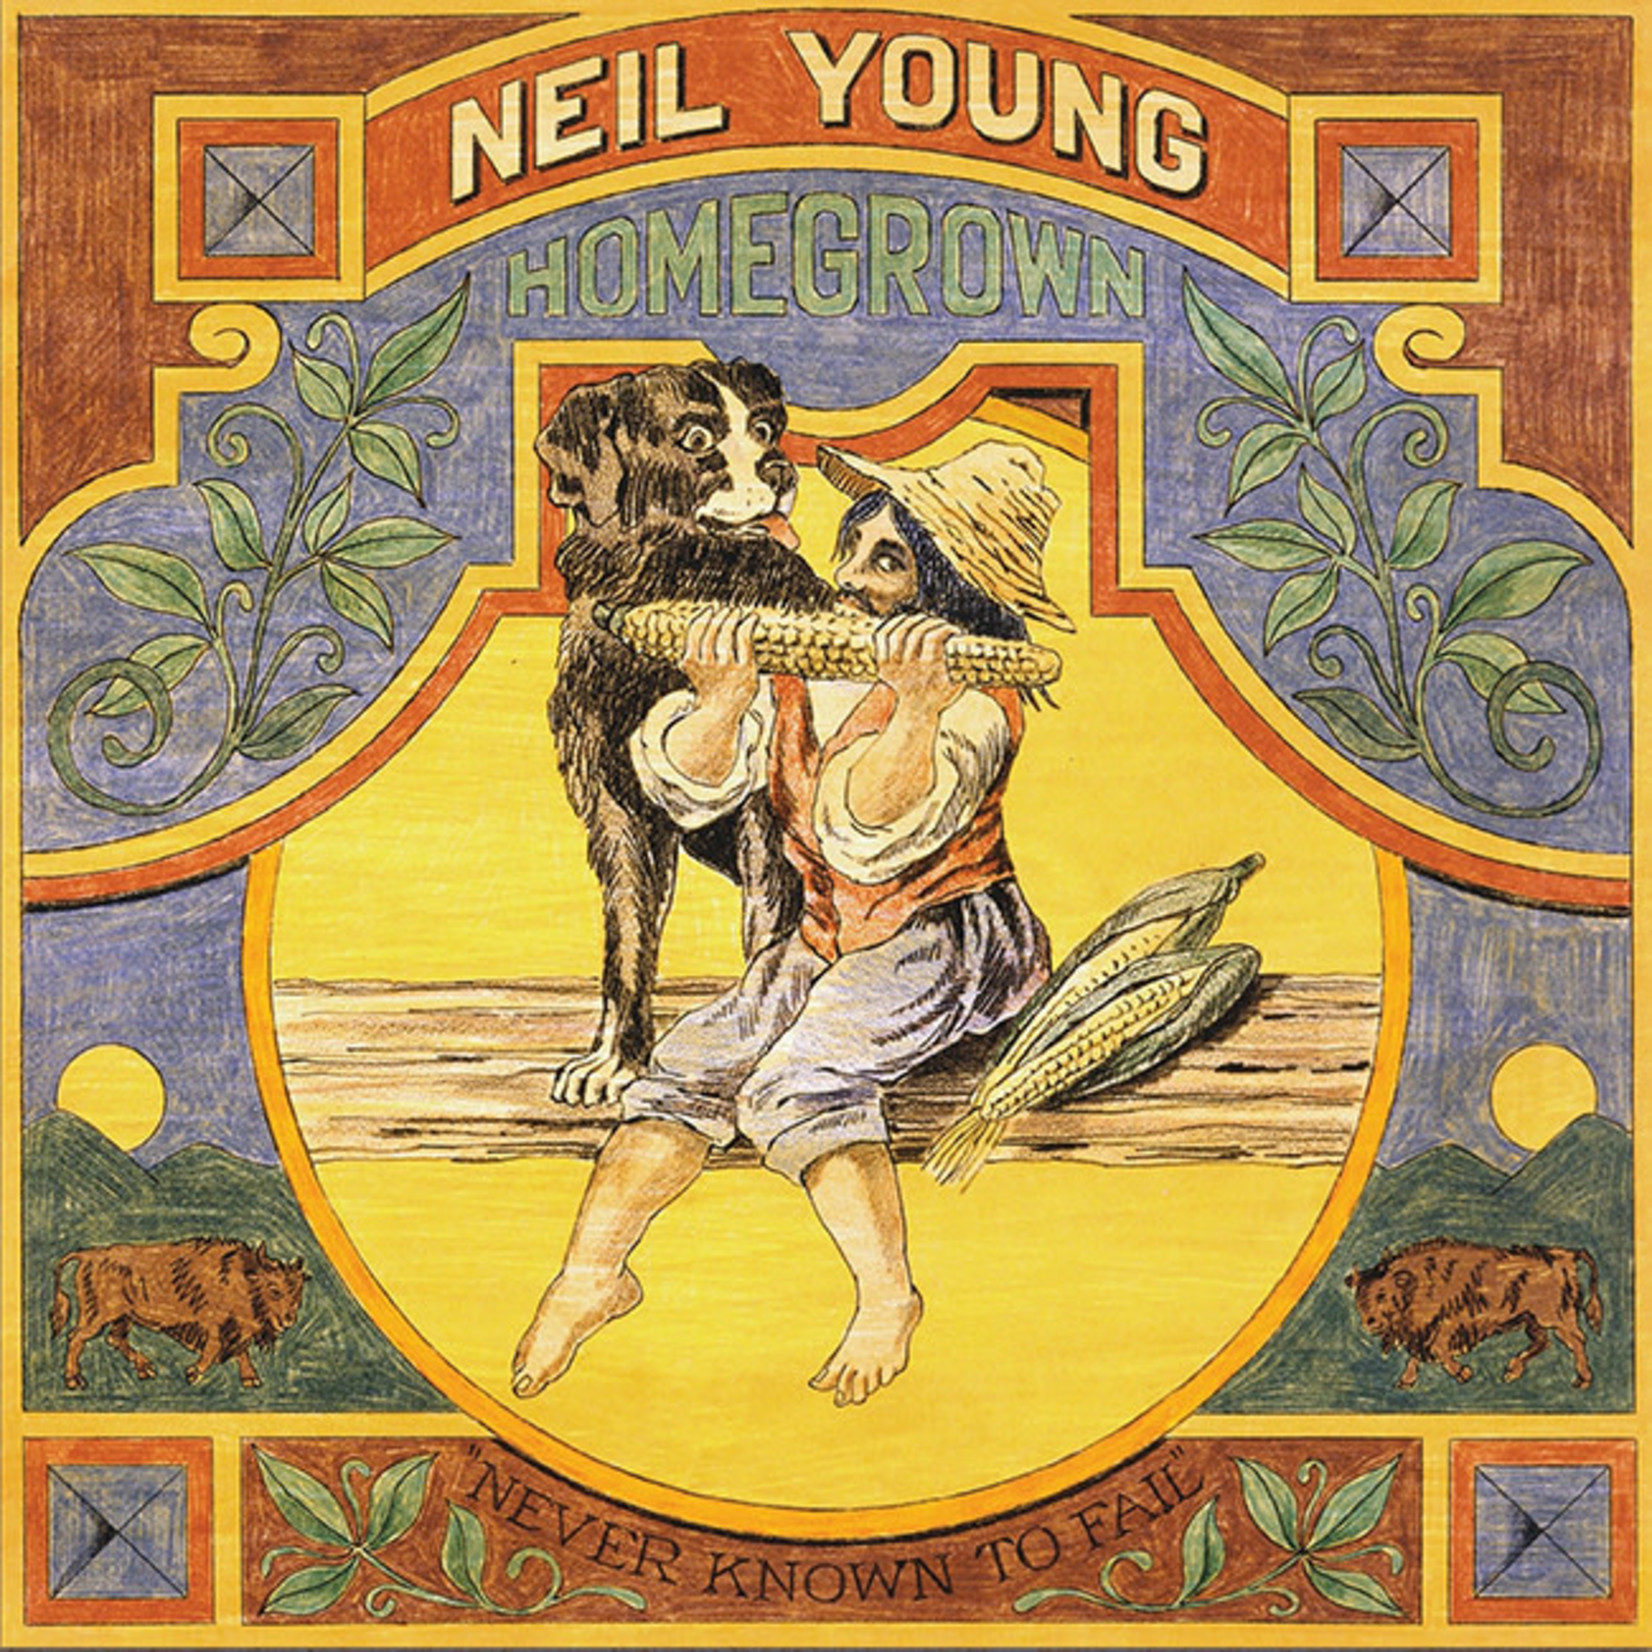 [New] Young, Neil: Homegrown (Neil Young Archives Series)